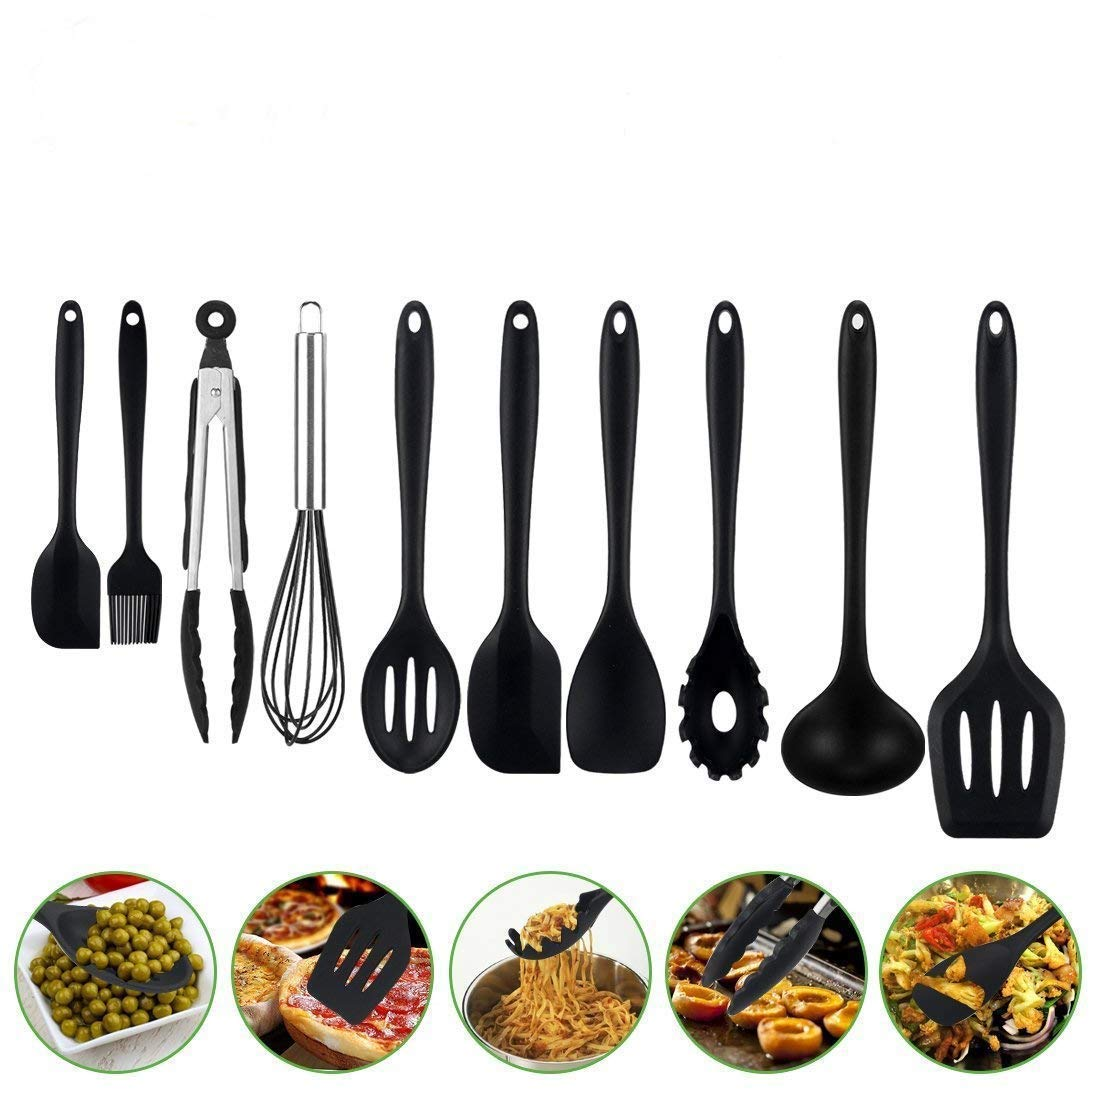 Aibesser Silicone Kitchen Utensils Set,Cooking Utensils Set 10 Pcs,Heat Resistant and Nonstick Cooking Gadgets Tool,Silicone Spoon Whisk Black New Arrival